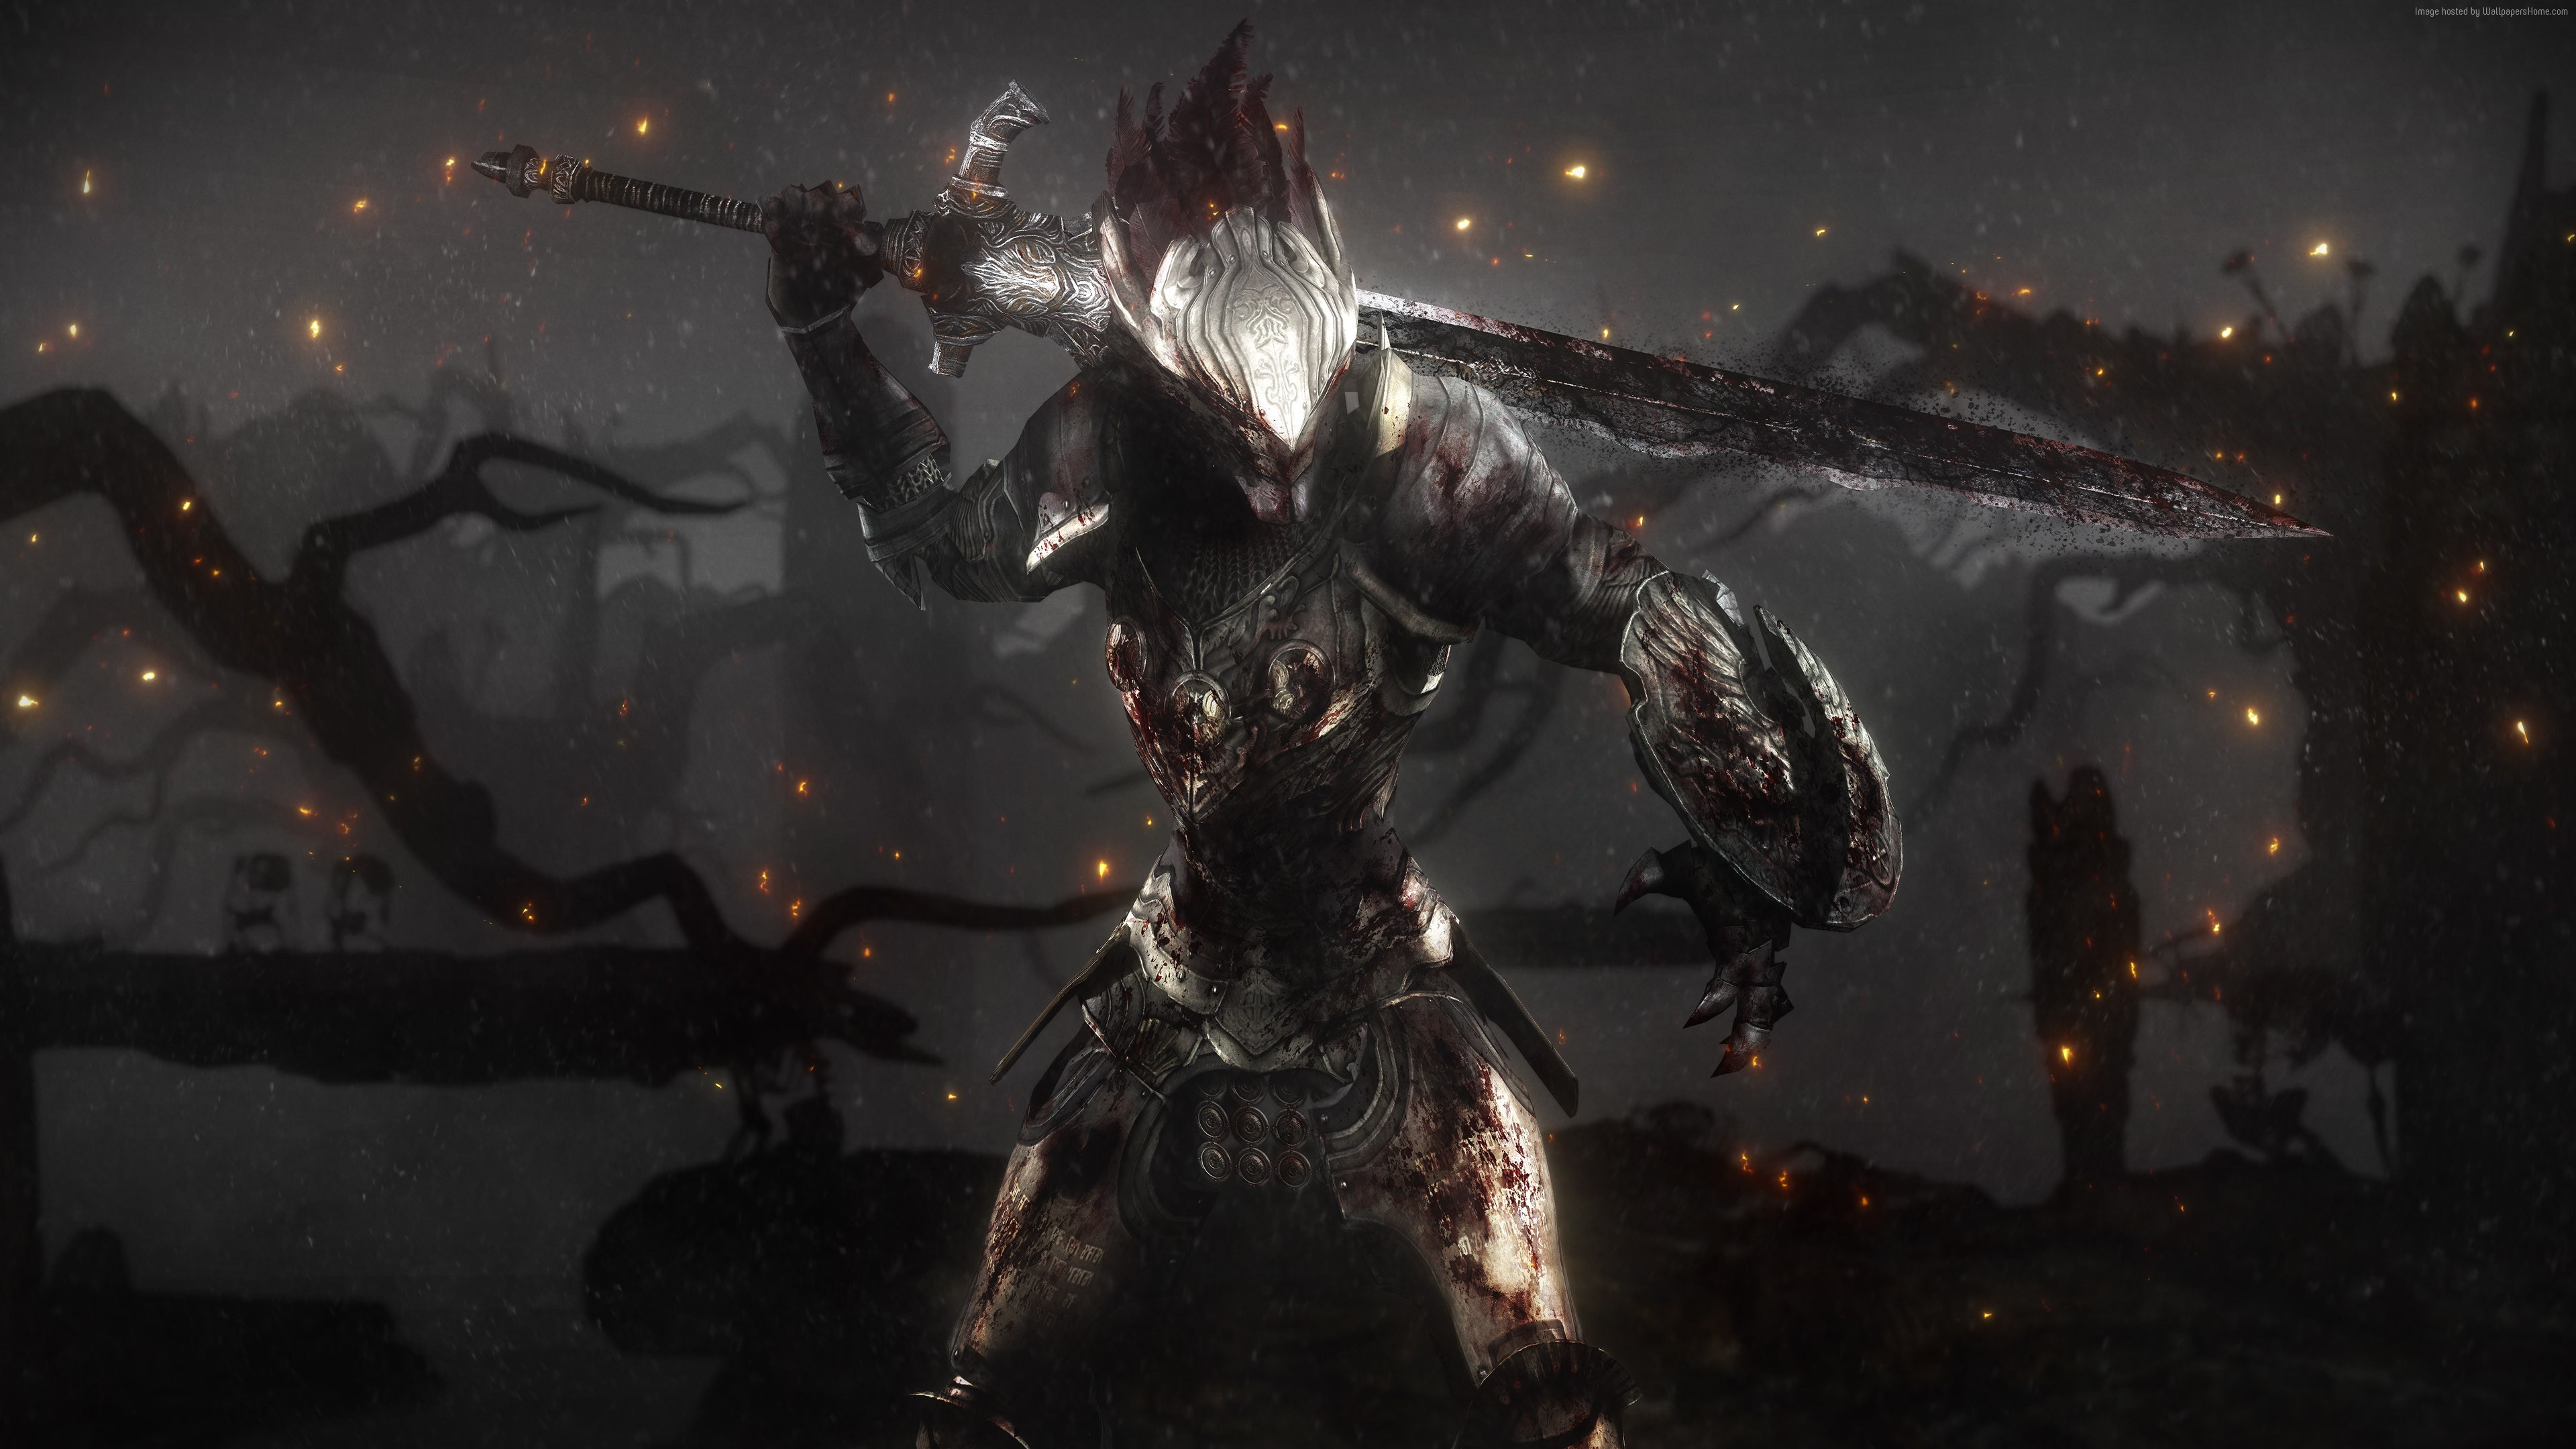 September 29 2015 By Stephen Comments Off on Dark Souls 3 Wallpaper 3840x2160